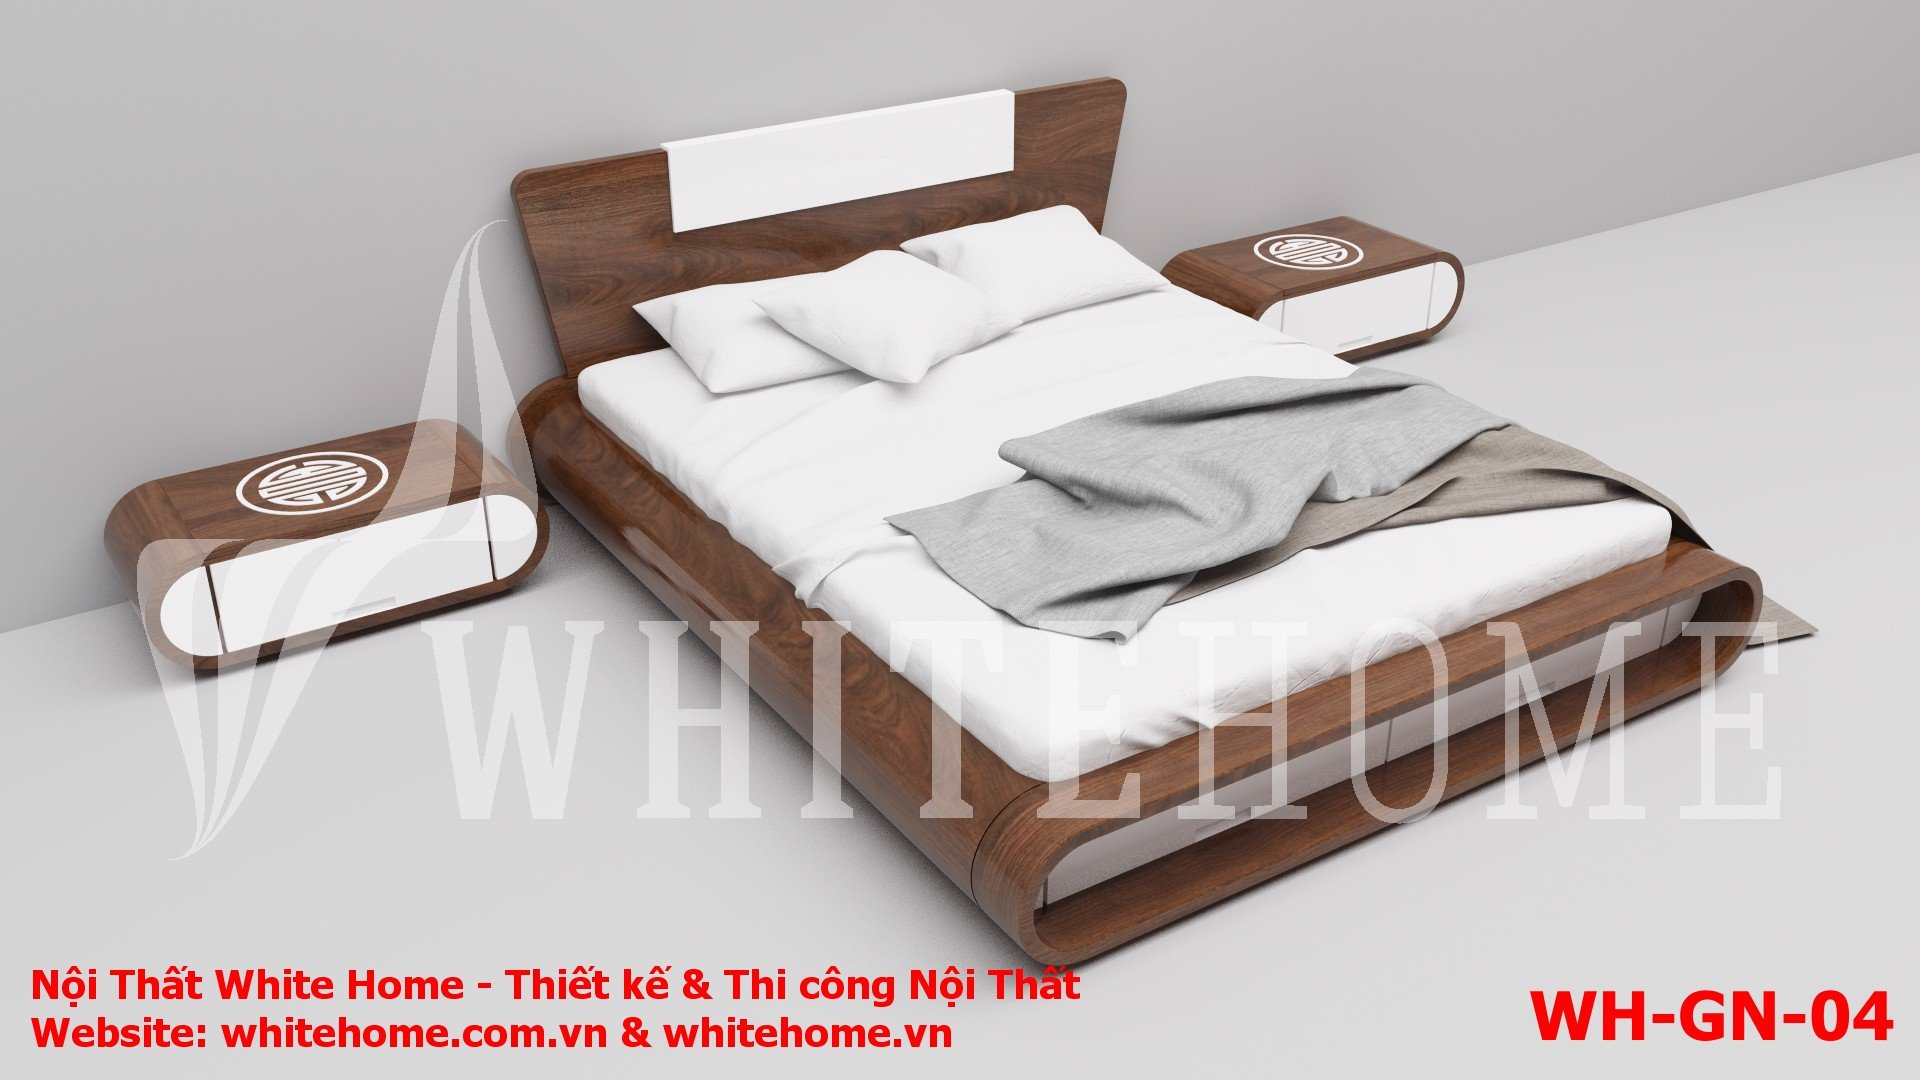 Gường ngủ WH-GN-04 - Nội Thất White Home